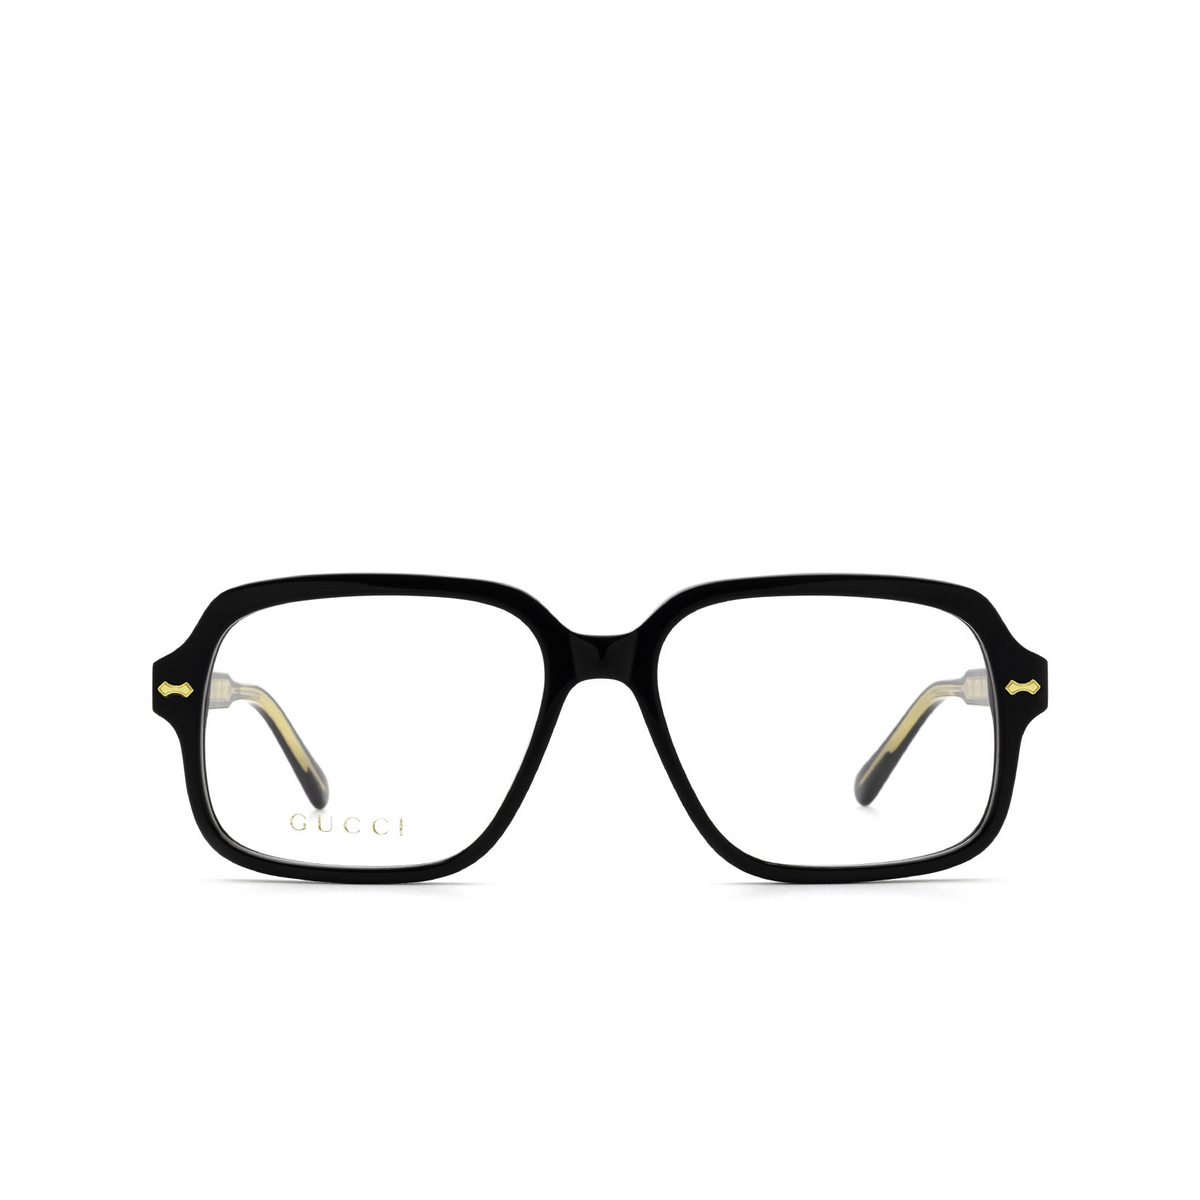 Gucci® Square Eyeglasses: GG0913O color Black 001 - front view.